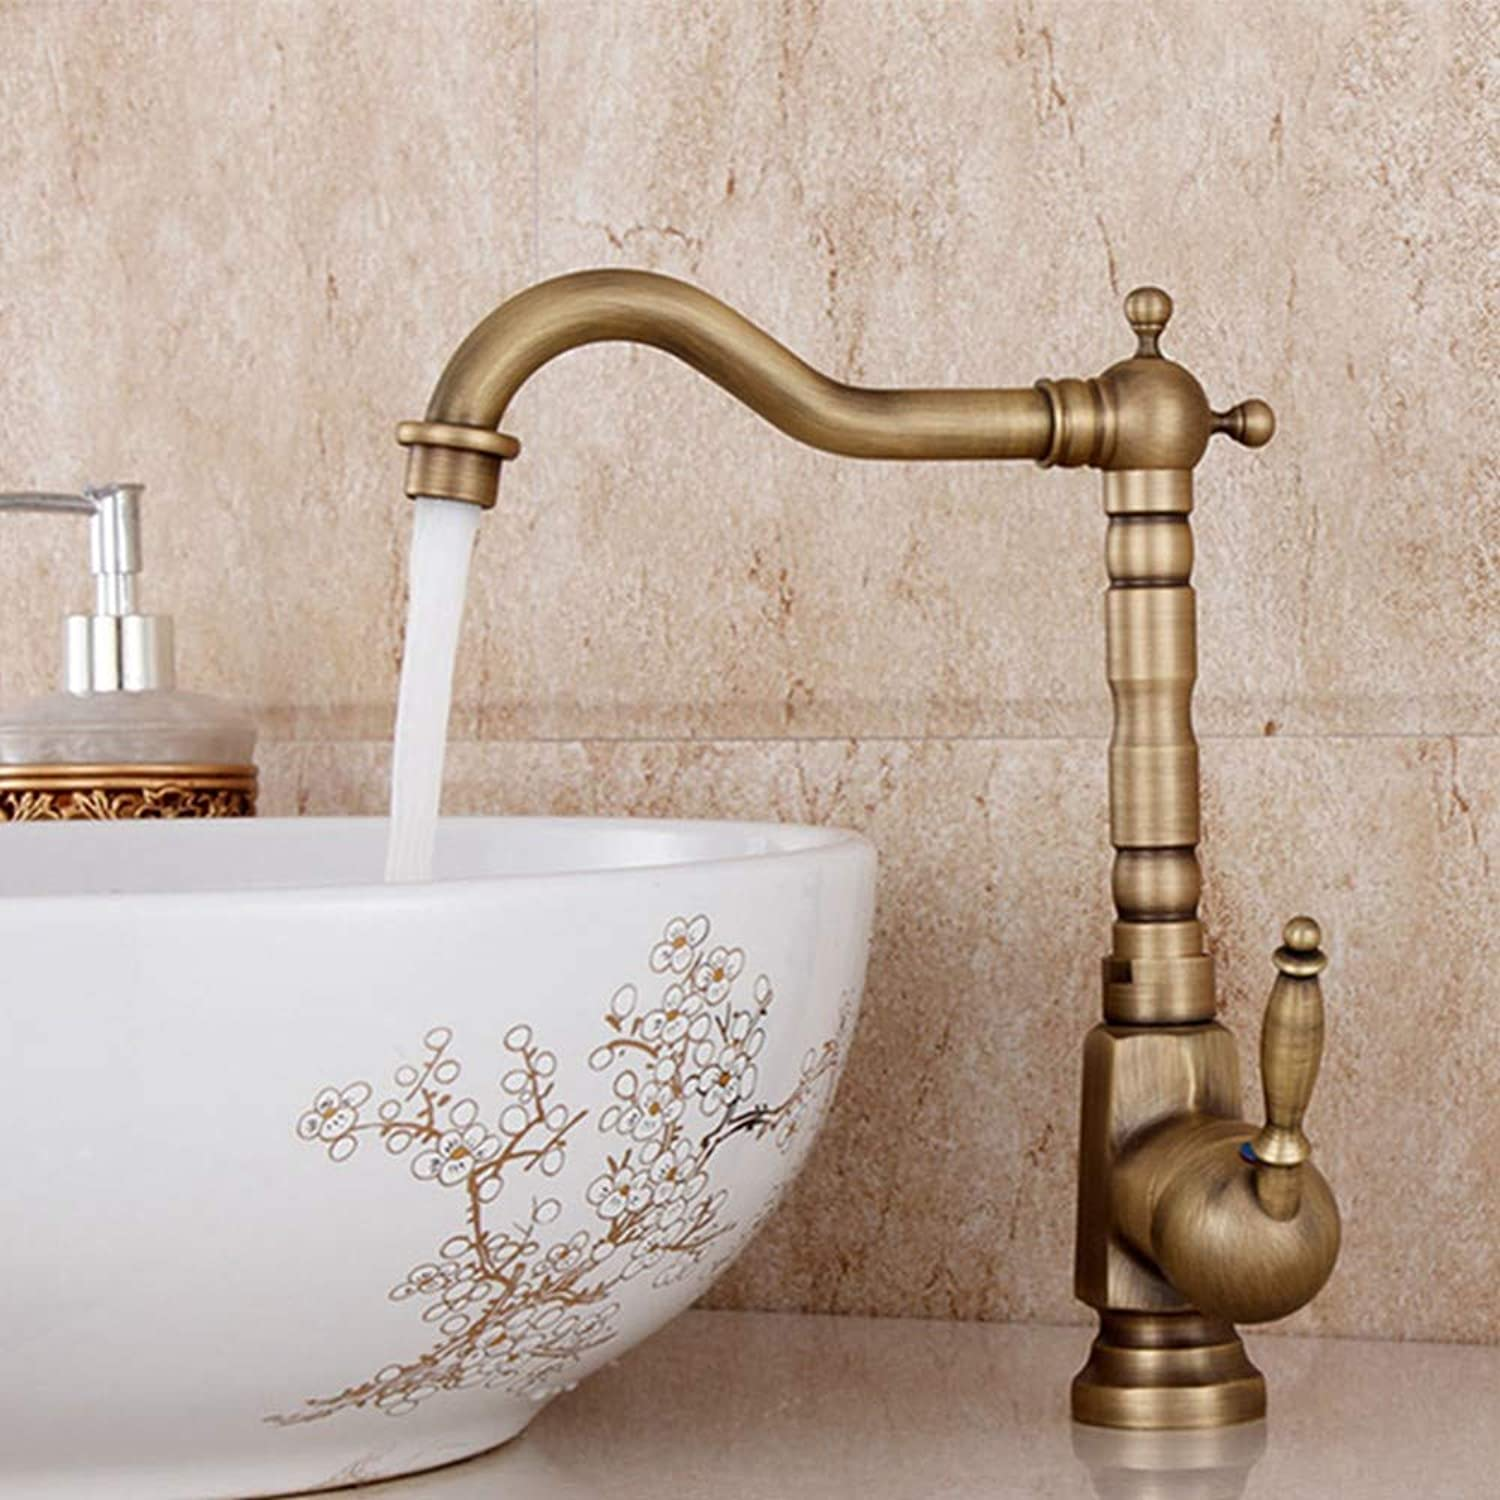 FZHLR Kitchen Faucet Antique Brass Sink Mixer Tap Hot and Cold Faucets 360 Degree Swivel Mixer Tap